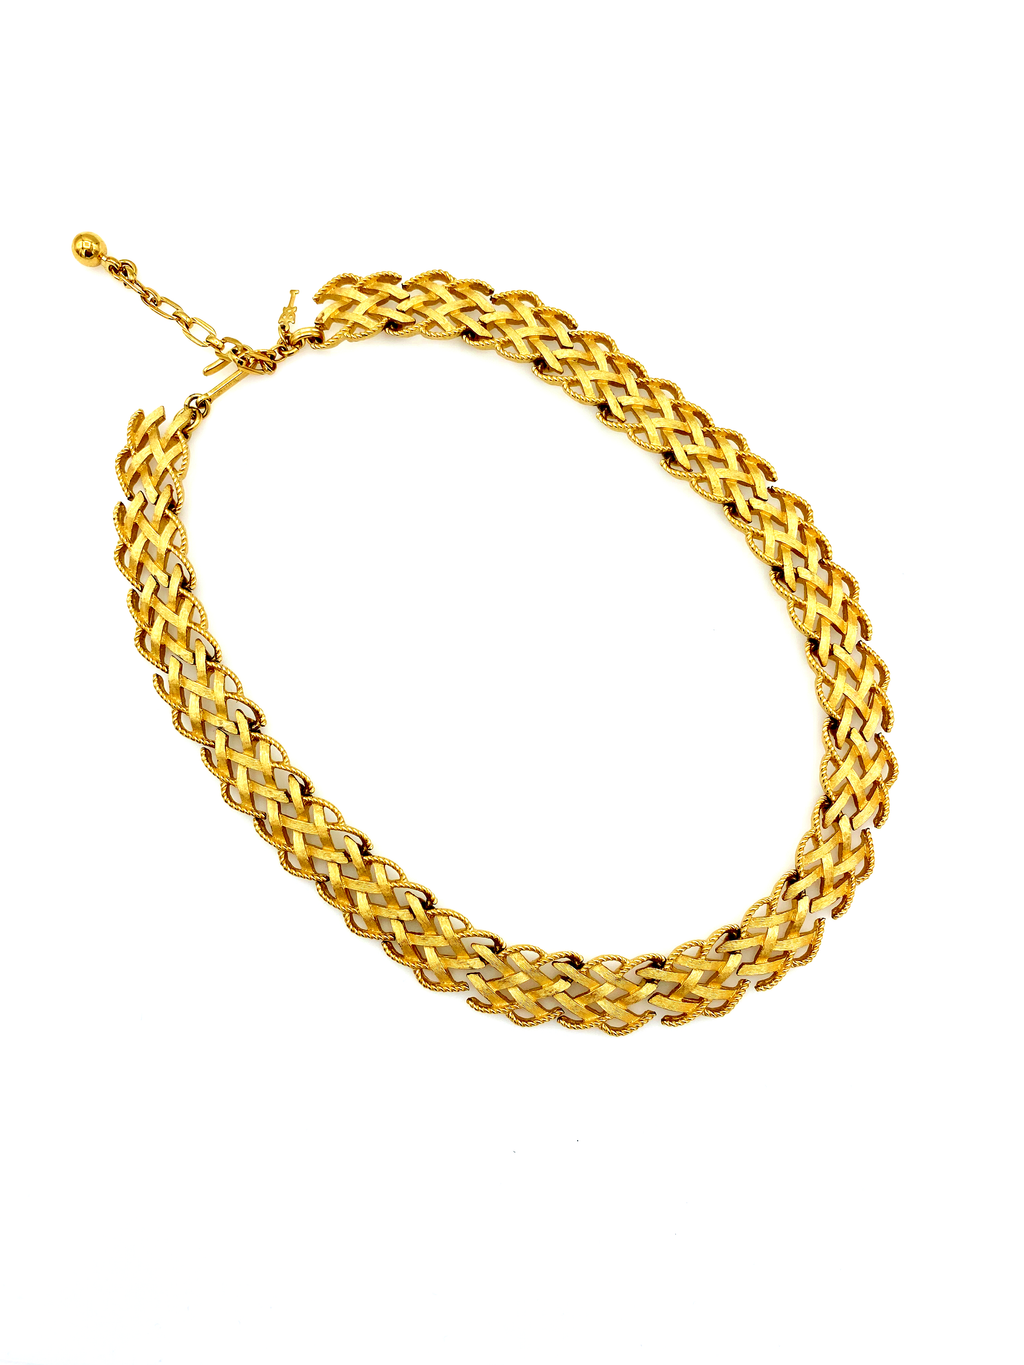 Trifari Gold Basket Weave Link Necklace-Sustainable Fashion with Vintage Style-Trending Designer Fashion-24 Wishes